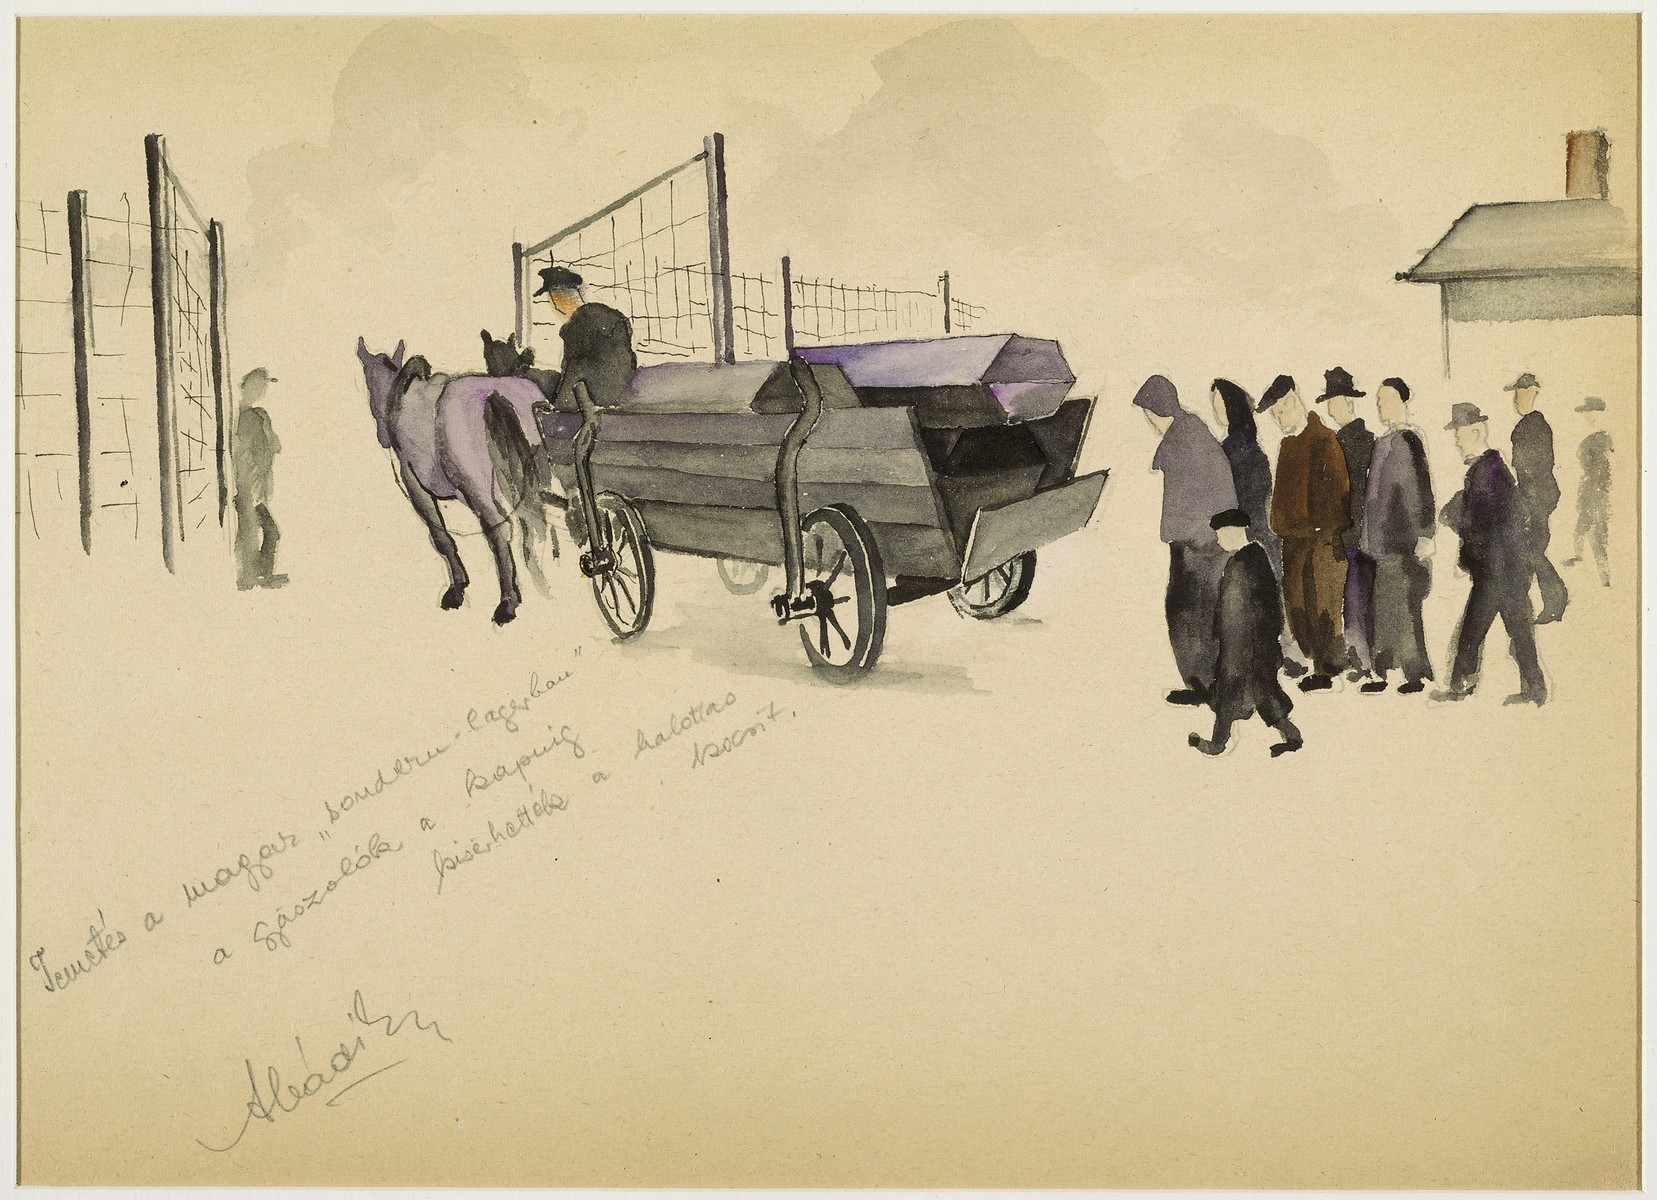 """Funeral in the Hungarian Sondern (Special-Lager- The Mourners were permitted to escort  the Hearse to the Gate"" by Ervin Abadi. Watercolor and pencil drawing.  Ervin Abadi, a Hungarian Jew from Budapest, was an aspiring young artist when WWII began.  He was drafted into the Hungarian labor service in the early 1940s.  Abadi managed to escape, but  was recaptured and immediately deported to Bergen-Belsen.  When the camp was liberated, his condition was such that he required extended hospitalization.  During his convalescence, he created dozens of works of holocaust art, including ink drawings, pencil and ink sketches and  watercolors. After recuperating Abadi returned to Budapest, where he published a collection of his watercolors in 1946.  After becoming disillusioned with the communist regime in Hungary, he moved to Israel, where he continued to publish in Hungarian and Hebrew.  He died in Israel in 1980."